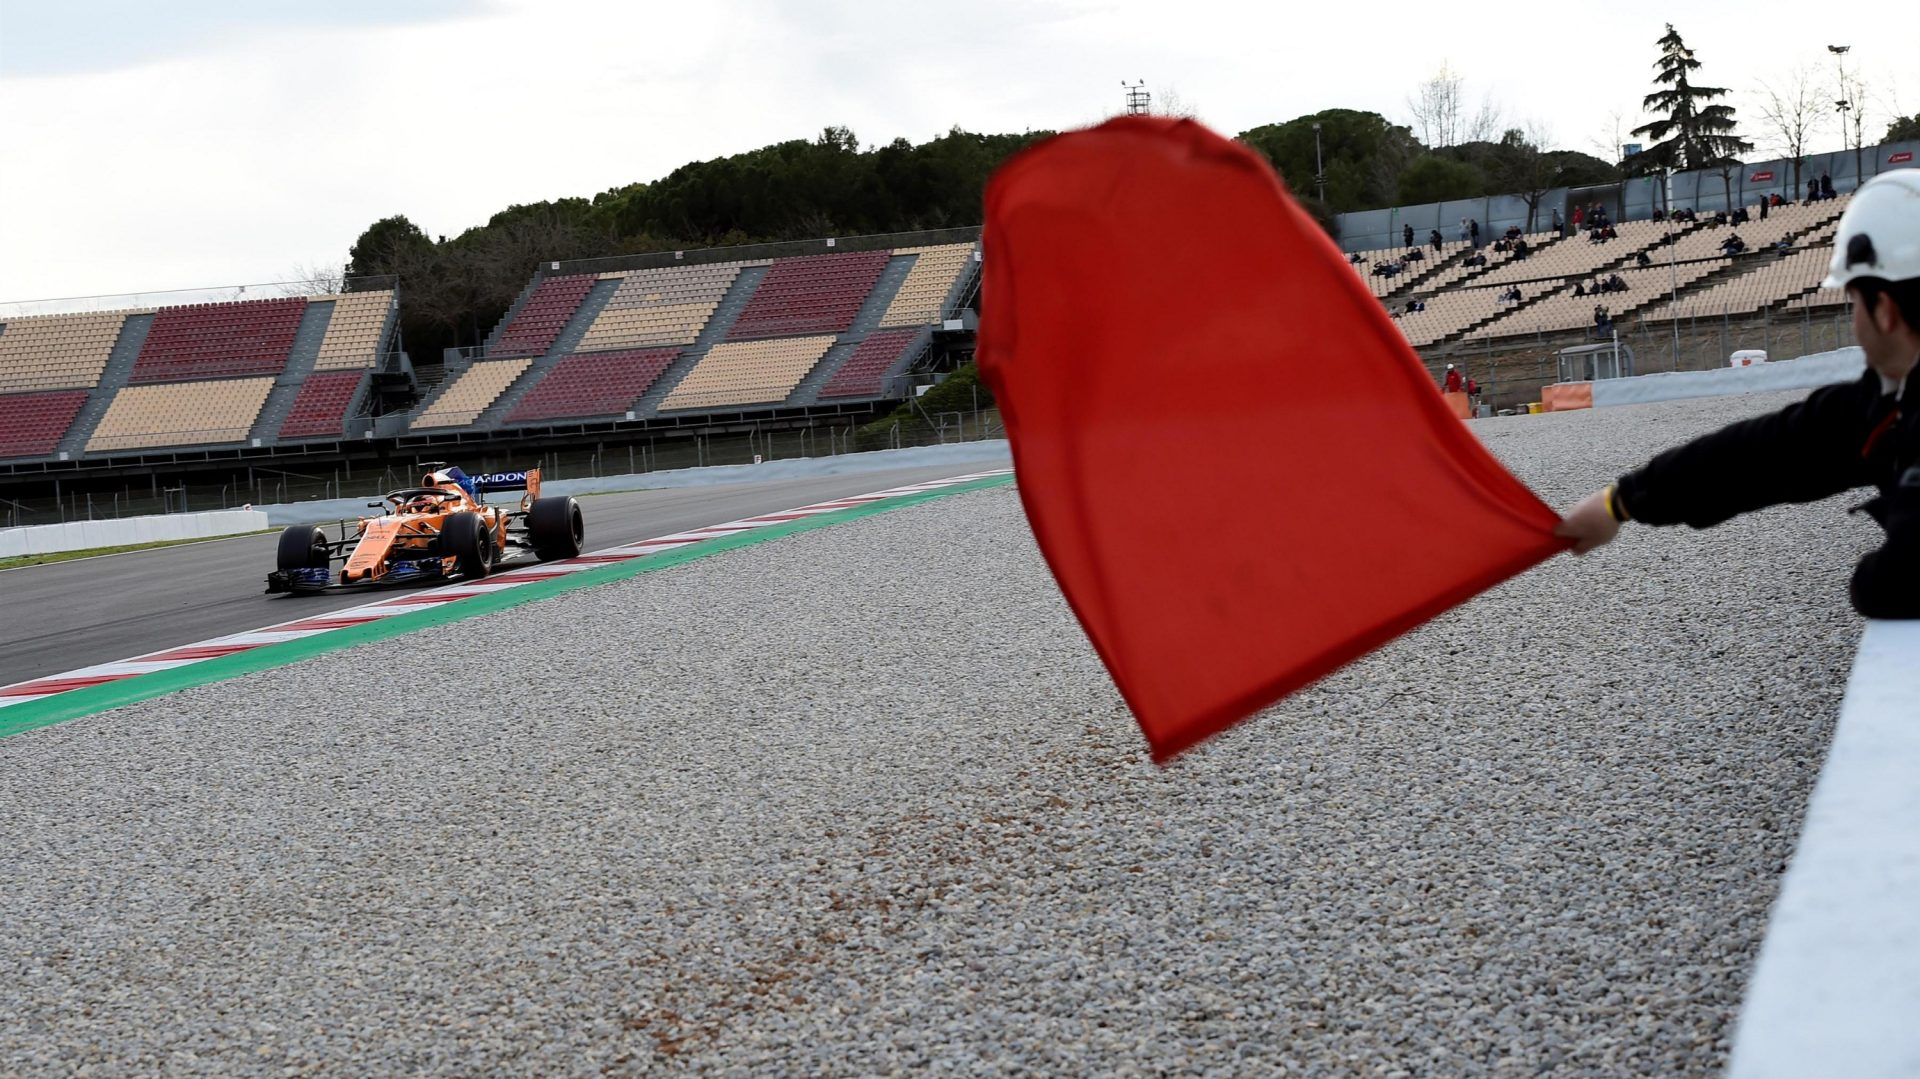 https://www.formula1.com/content/fom-website/en/latest/features/2018/3/gallery--day-3-of-the-second-barcelona-test/_jcr_content/featureContent/manual_gallery/image17.img.1920.medium.jpg/1520524892828.jpg